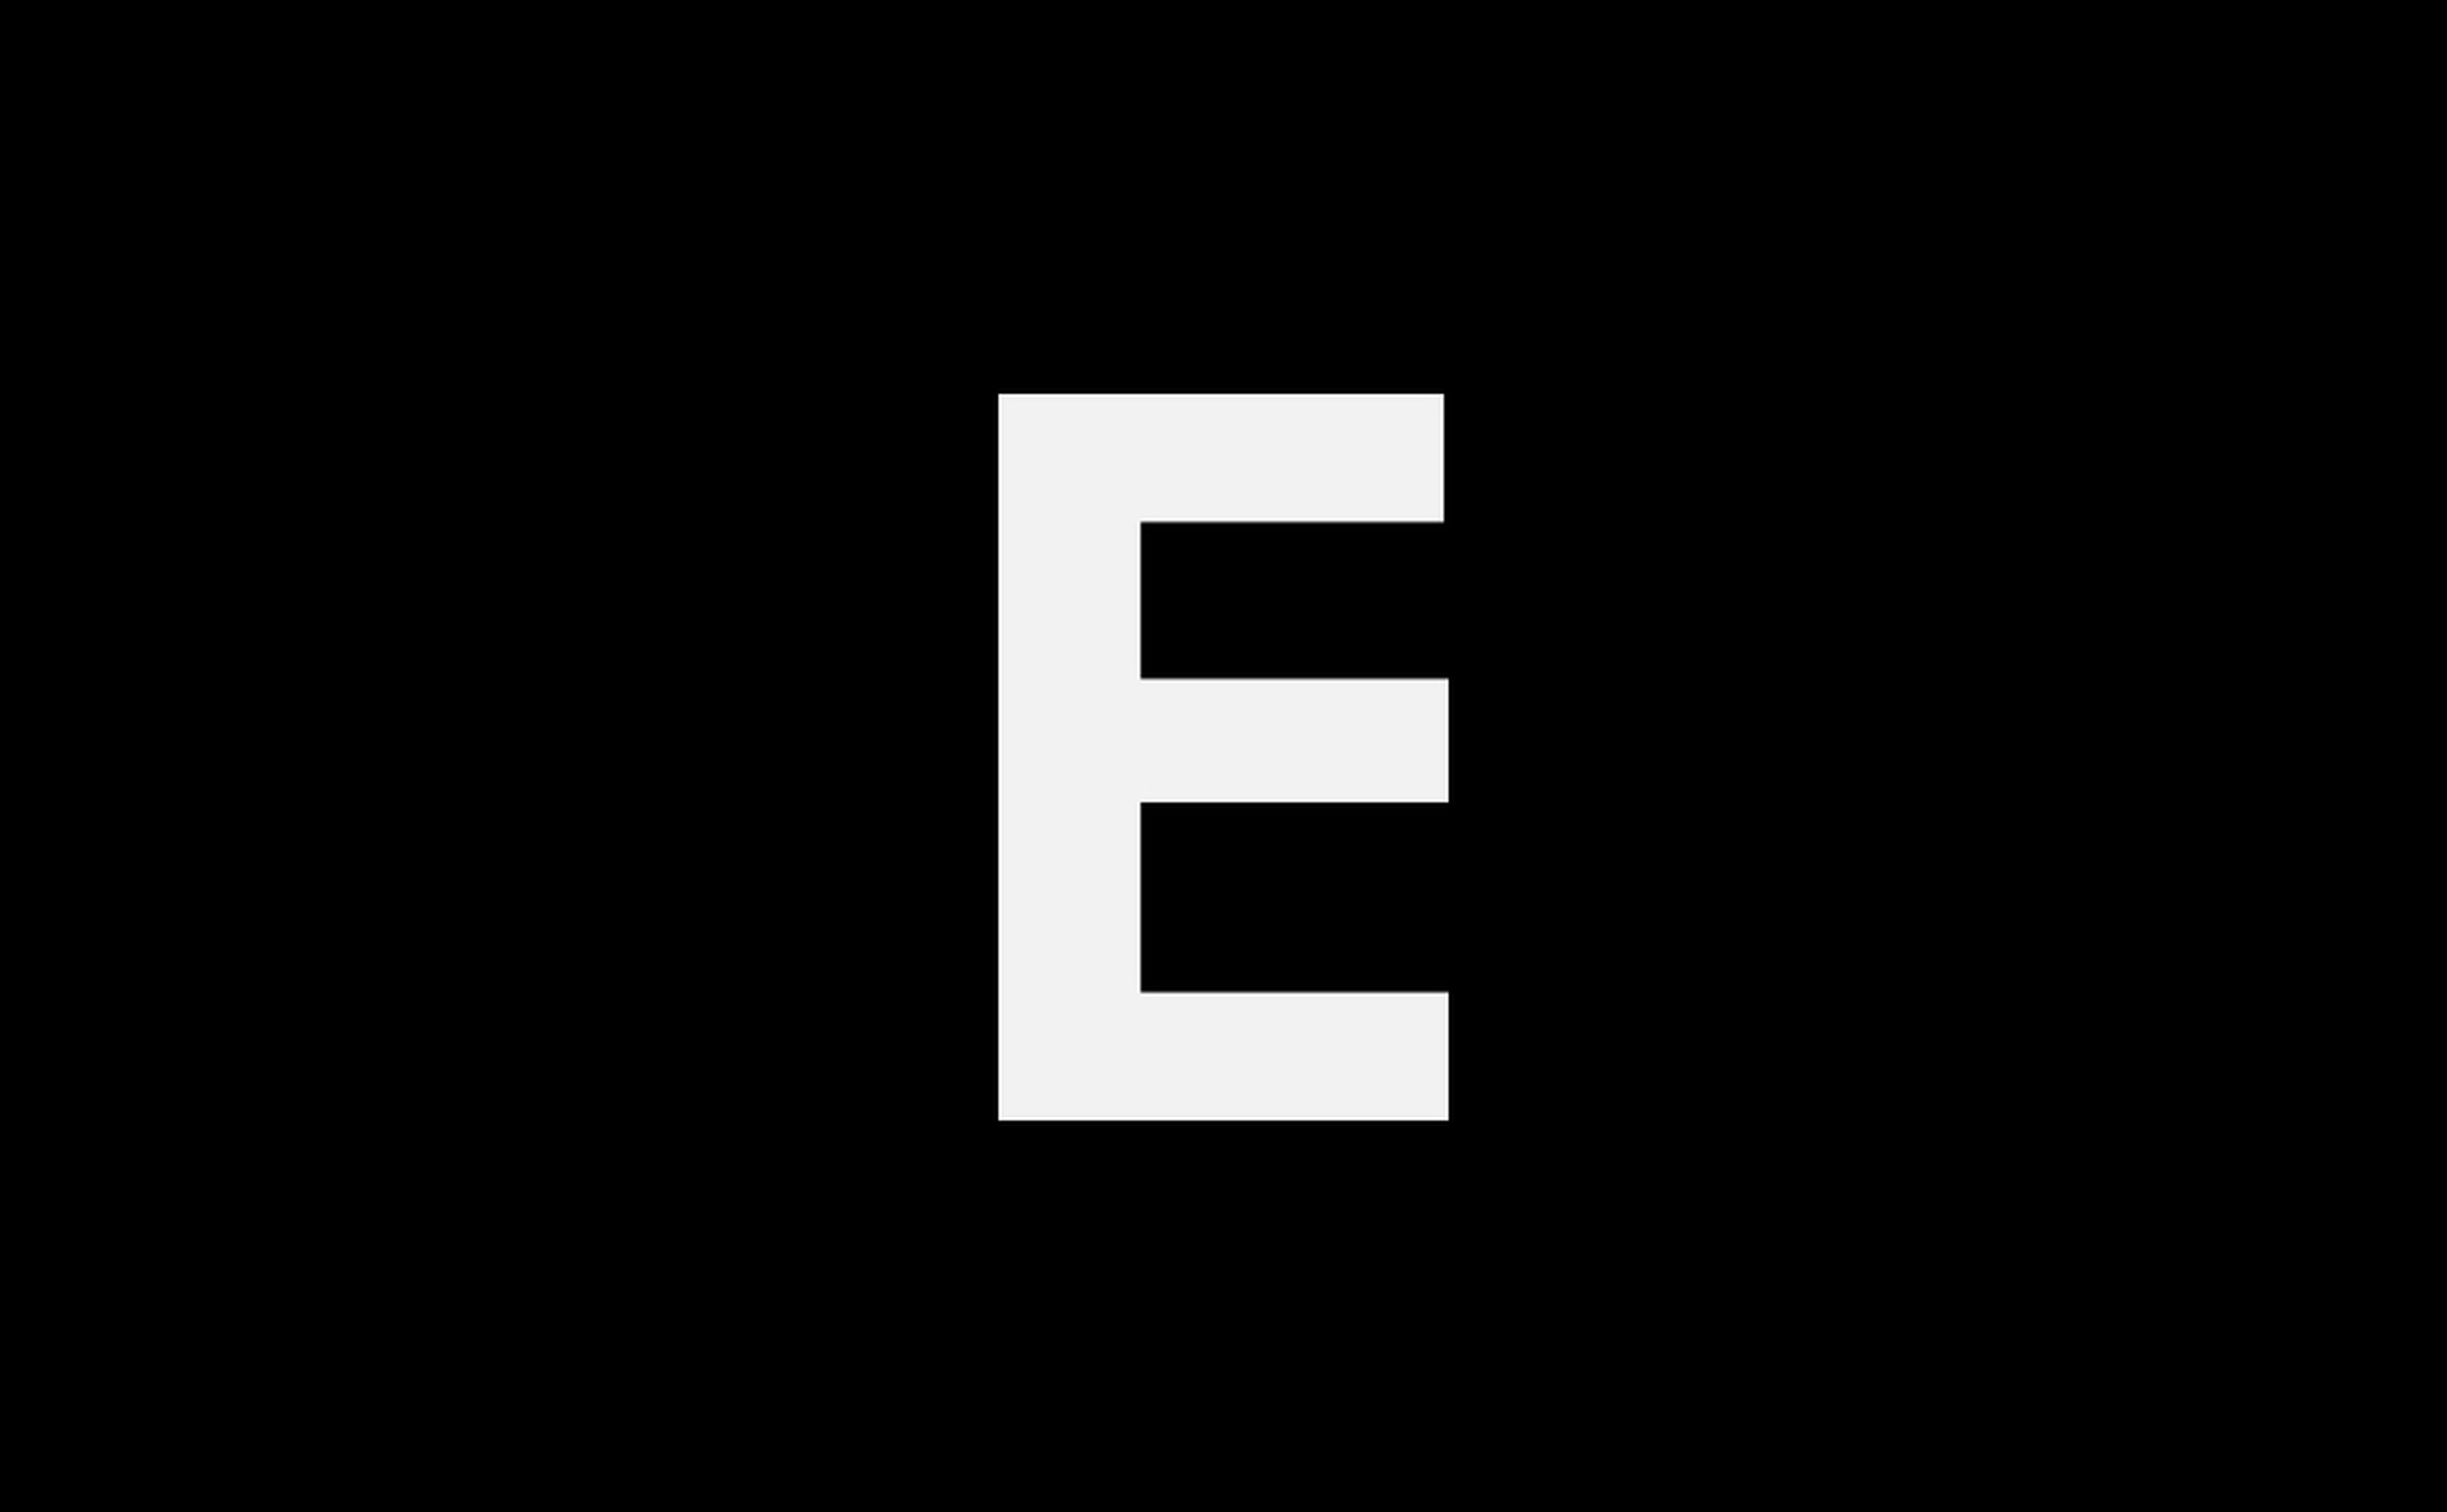 FULL LENGTH REAR VIEW OF WOMAN STANDING IN ILLUMINATED SUBWAY